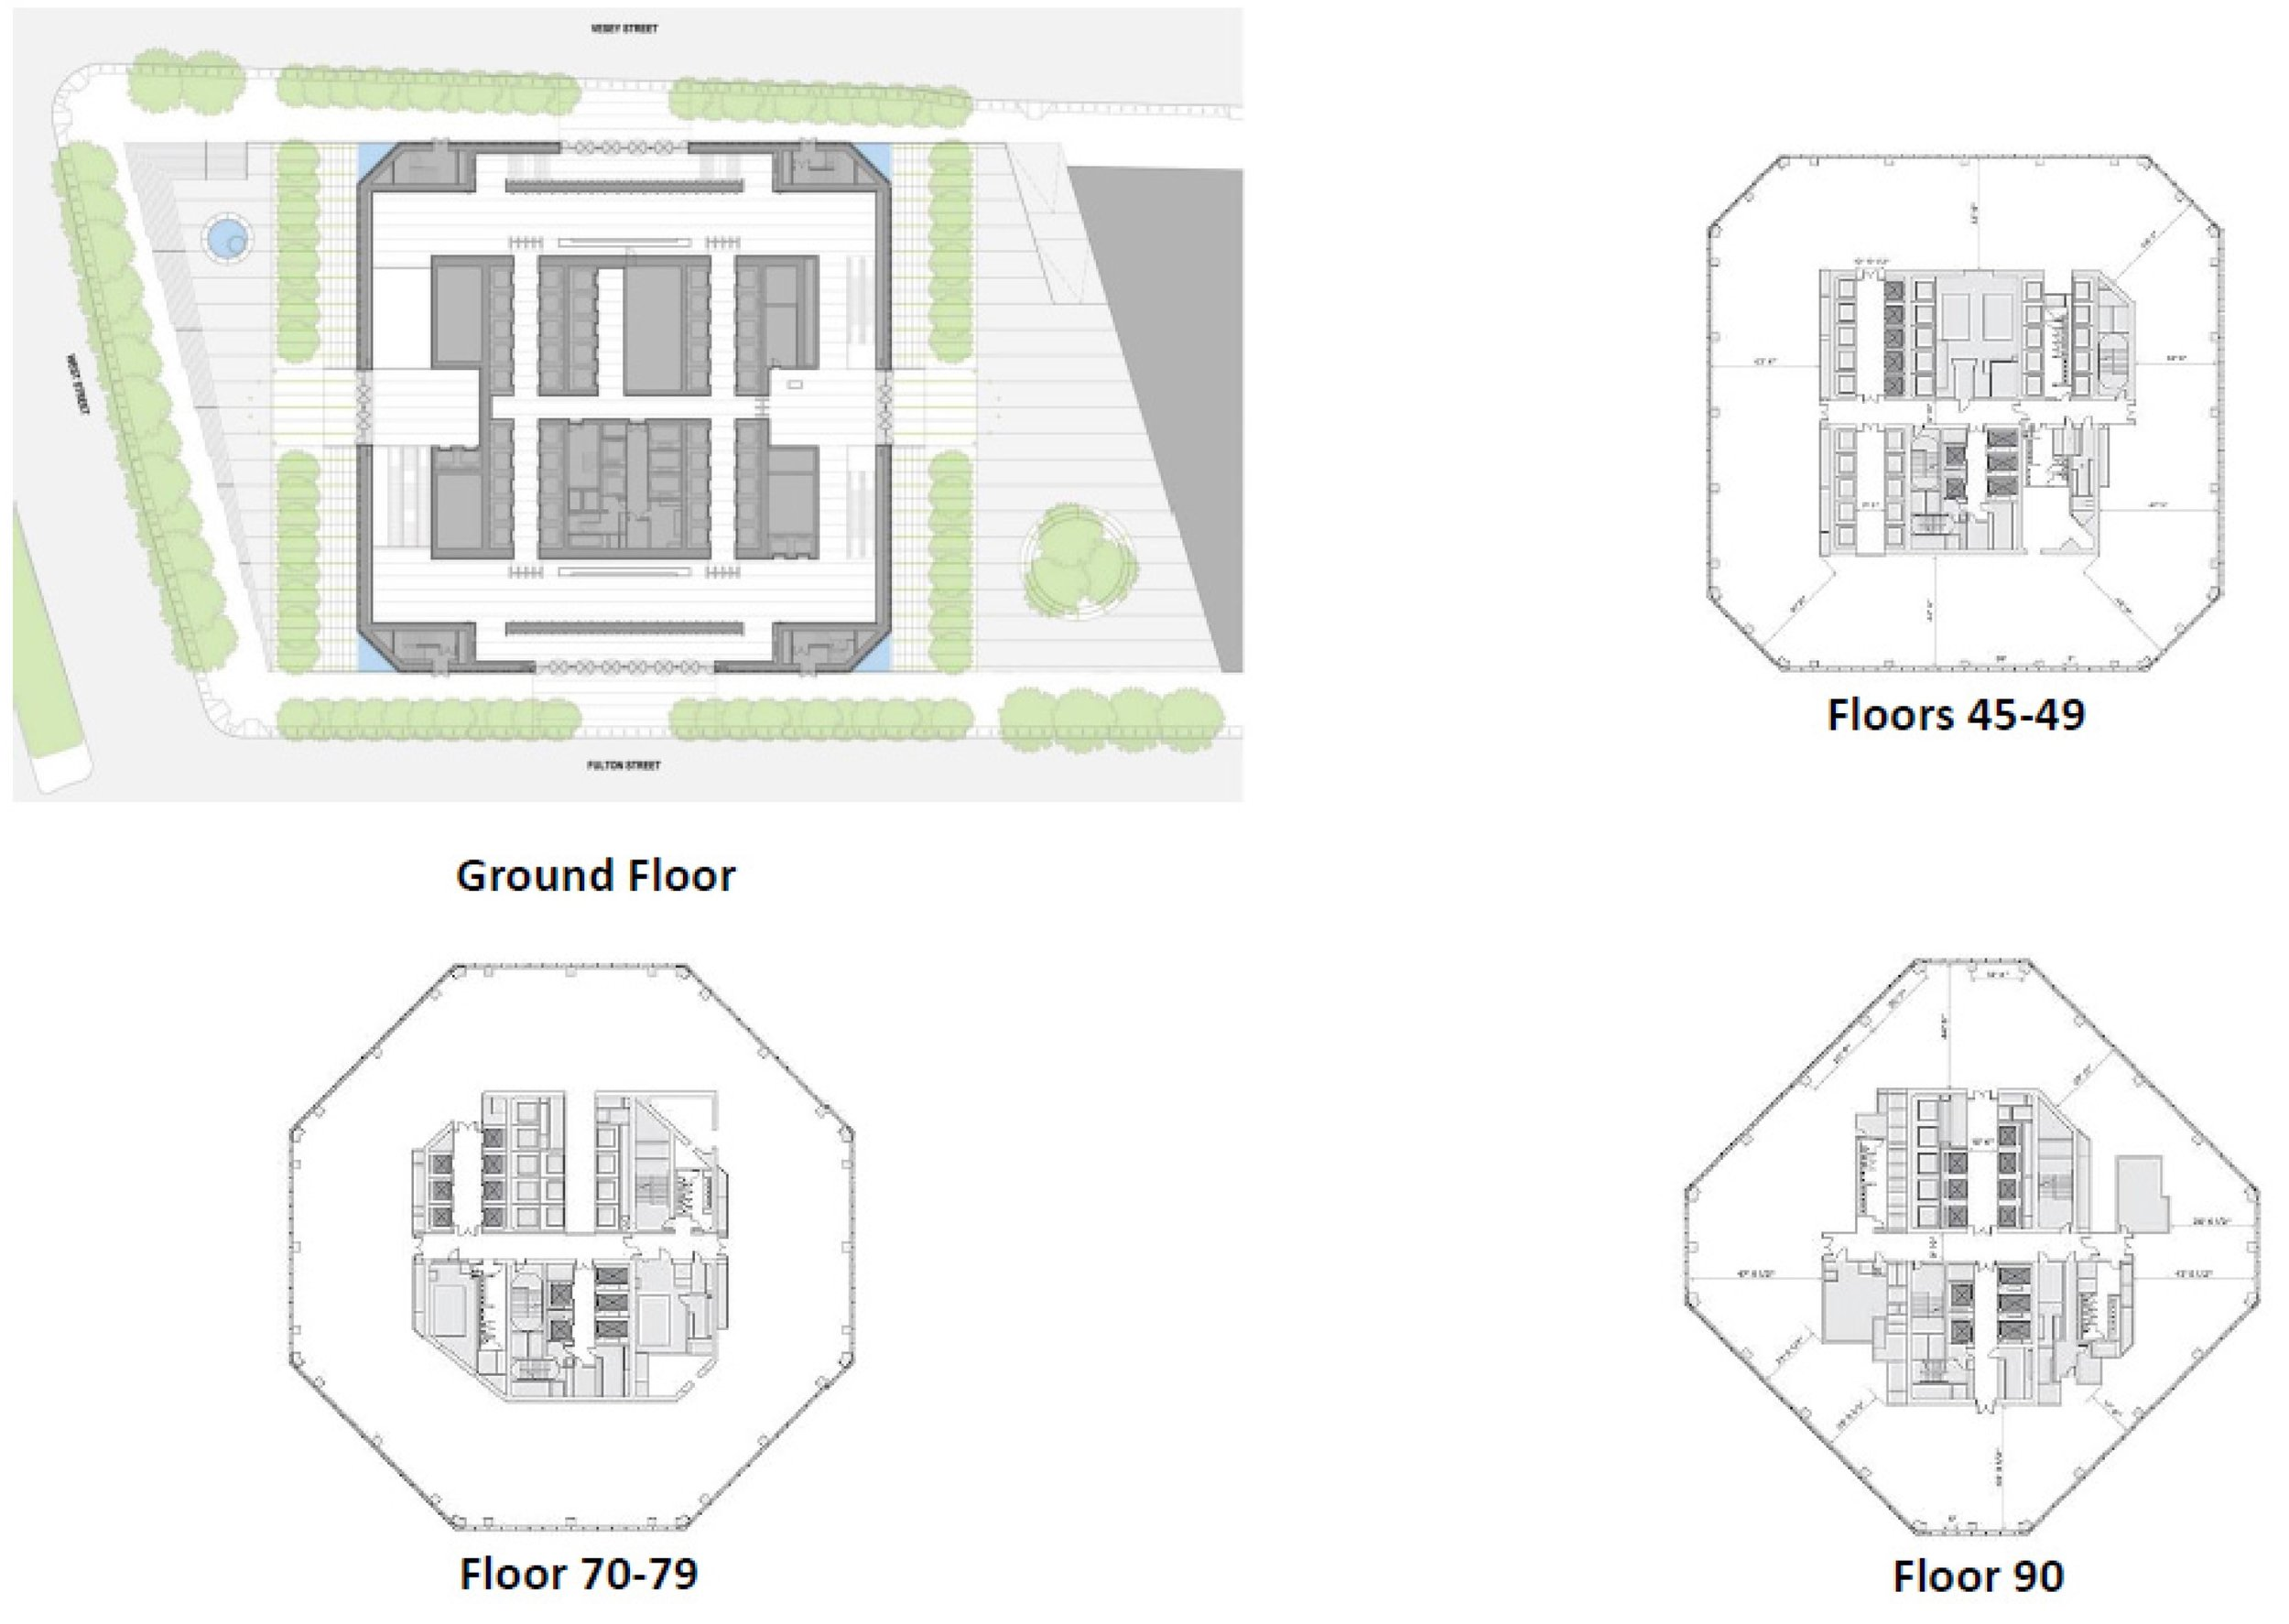 One World Trade gradually tapers from the base, transforming from a square-shaped plan, to an octagon halfway up the building, and finally back to a square but smaller in size and rotated 45 degrees relative to the base.